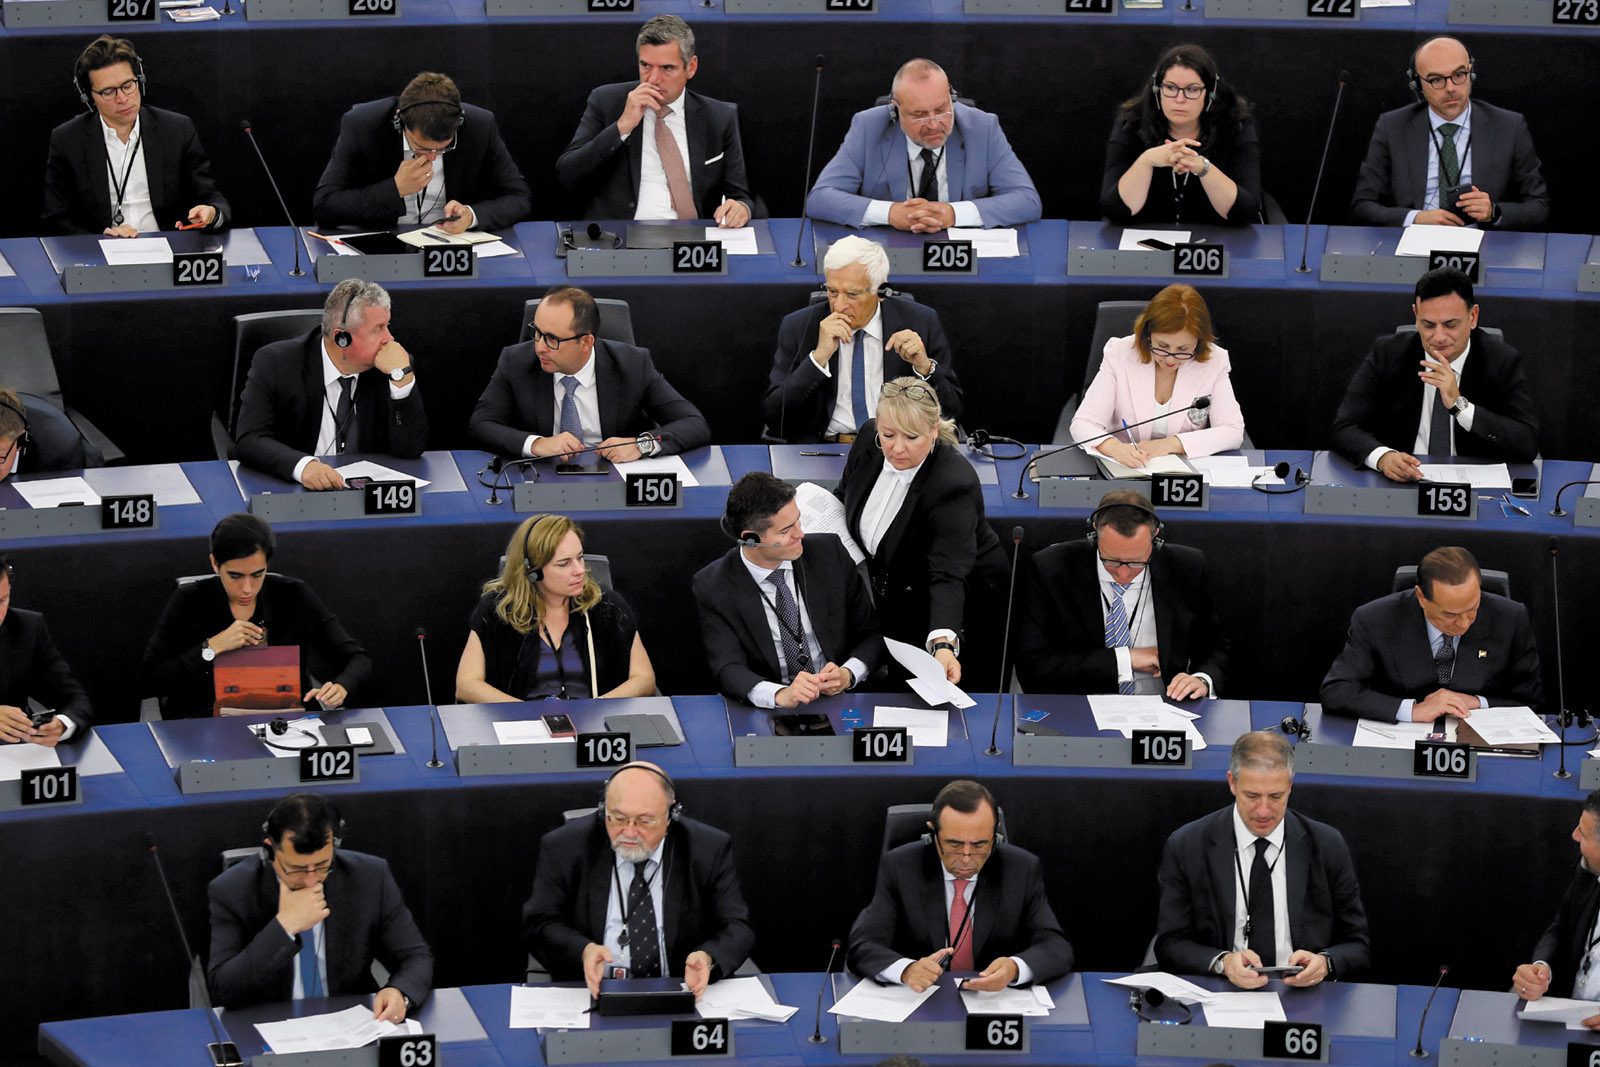 Members of the European Parliament in a plenary session to elect their new president, Strasbourg, July 3, 2019